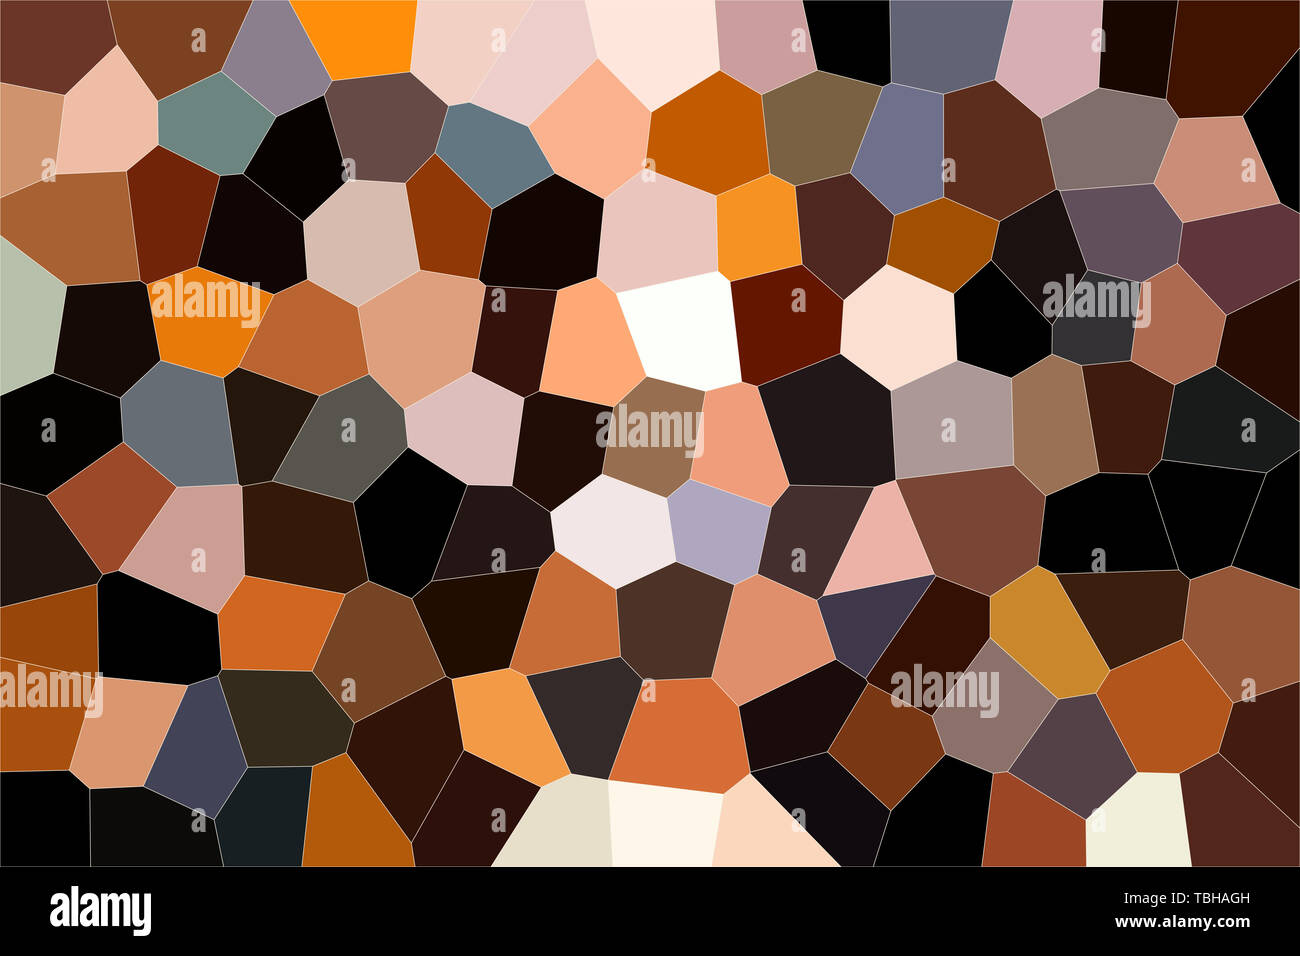 Geometric pattern of dark colors as a mosaic of large tiles of a minimalist design of brown tones, abstract colored texture shape. - Stock Image